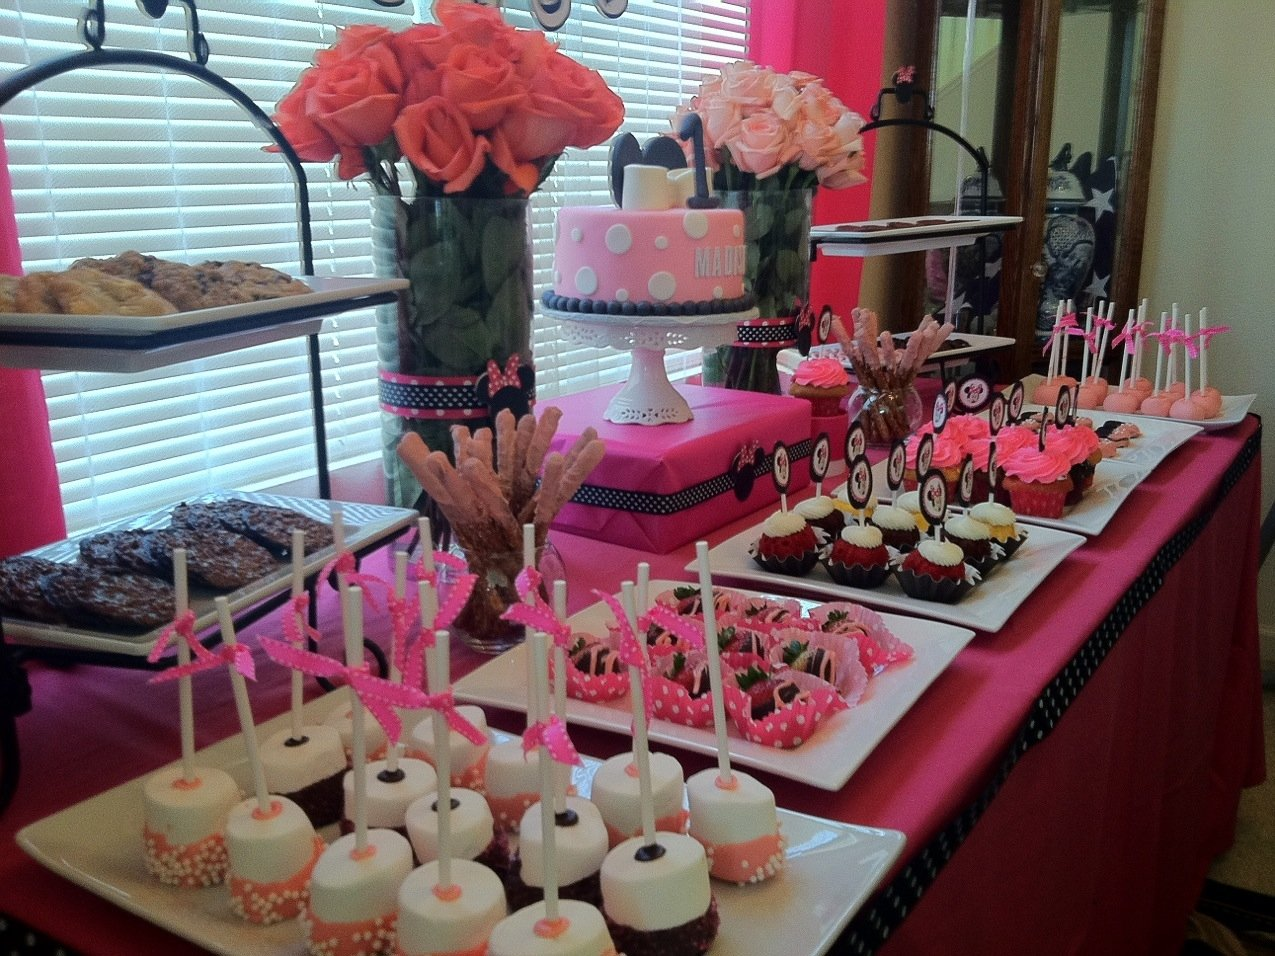 10 Fashionable Minnie Mouse First Birthday Ideas minnie mouse 1st birthday theme minnie mouse theme for maddy 1st 2 2021